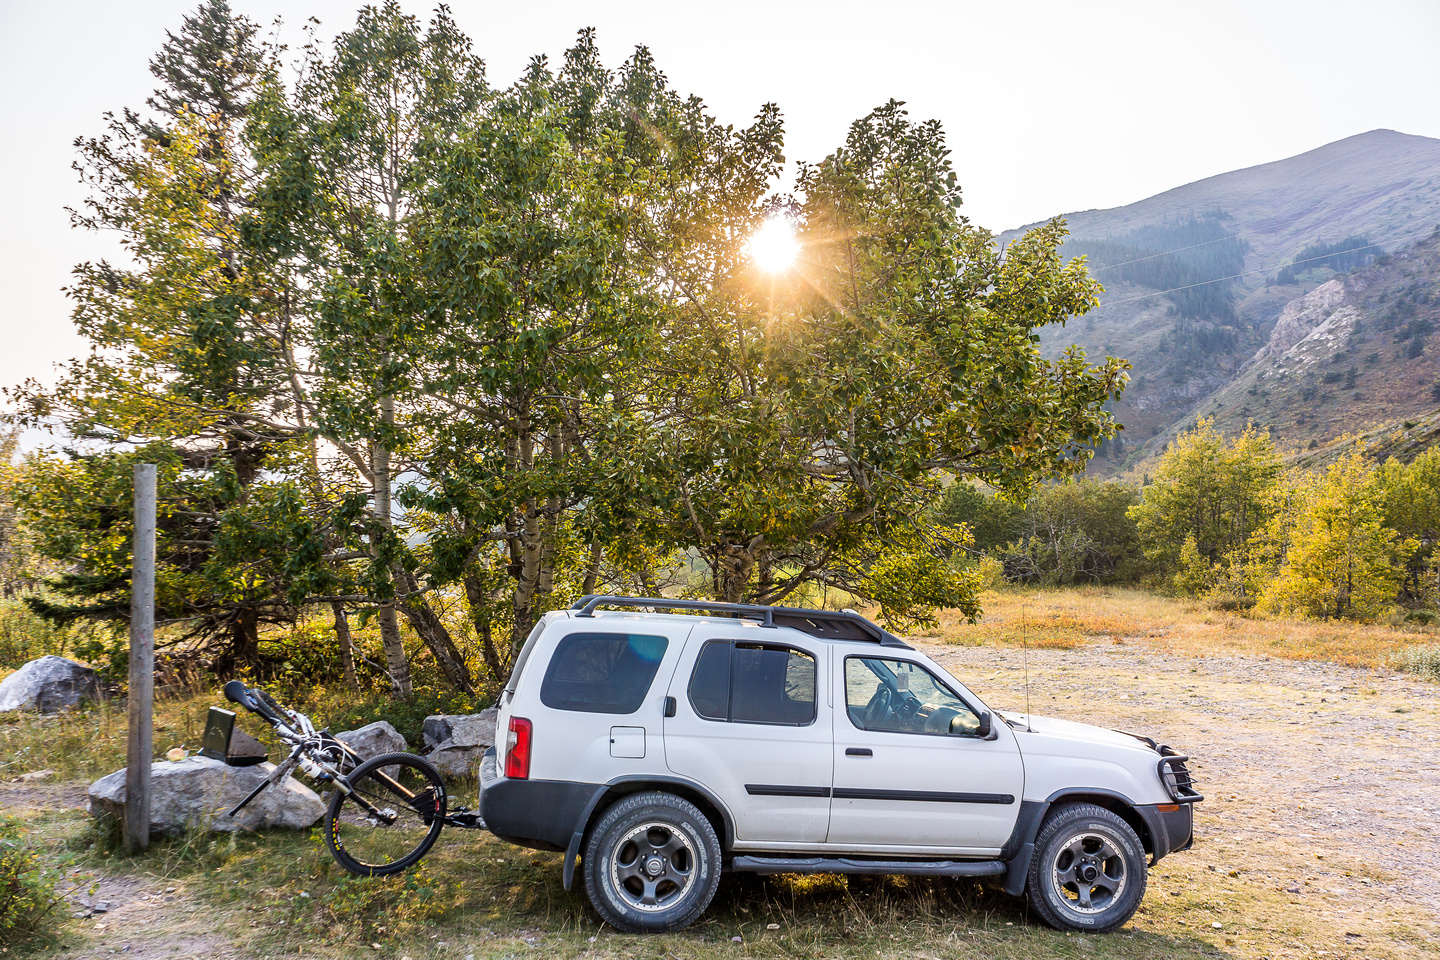 My excellent camping spot (slept in the truck) at the Pincher Ridge trailhead. It had a running stream and nobody bothered me either. The tree gave me shade.